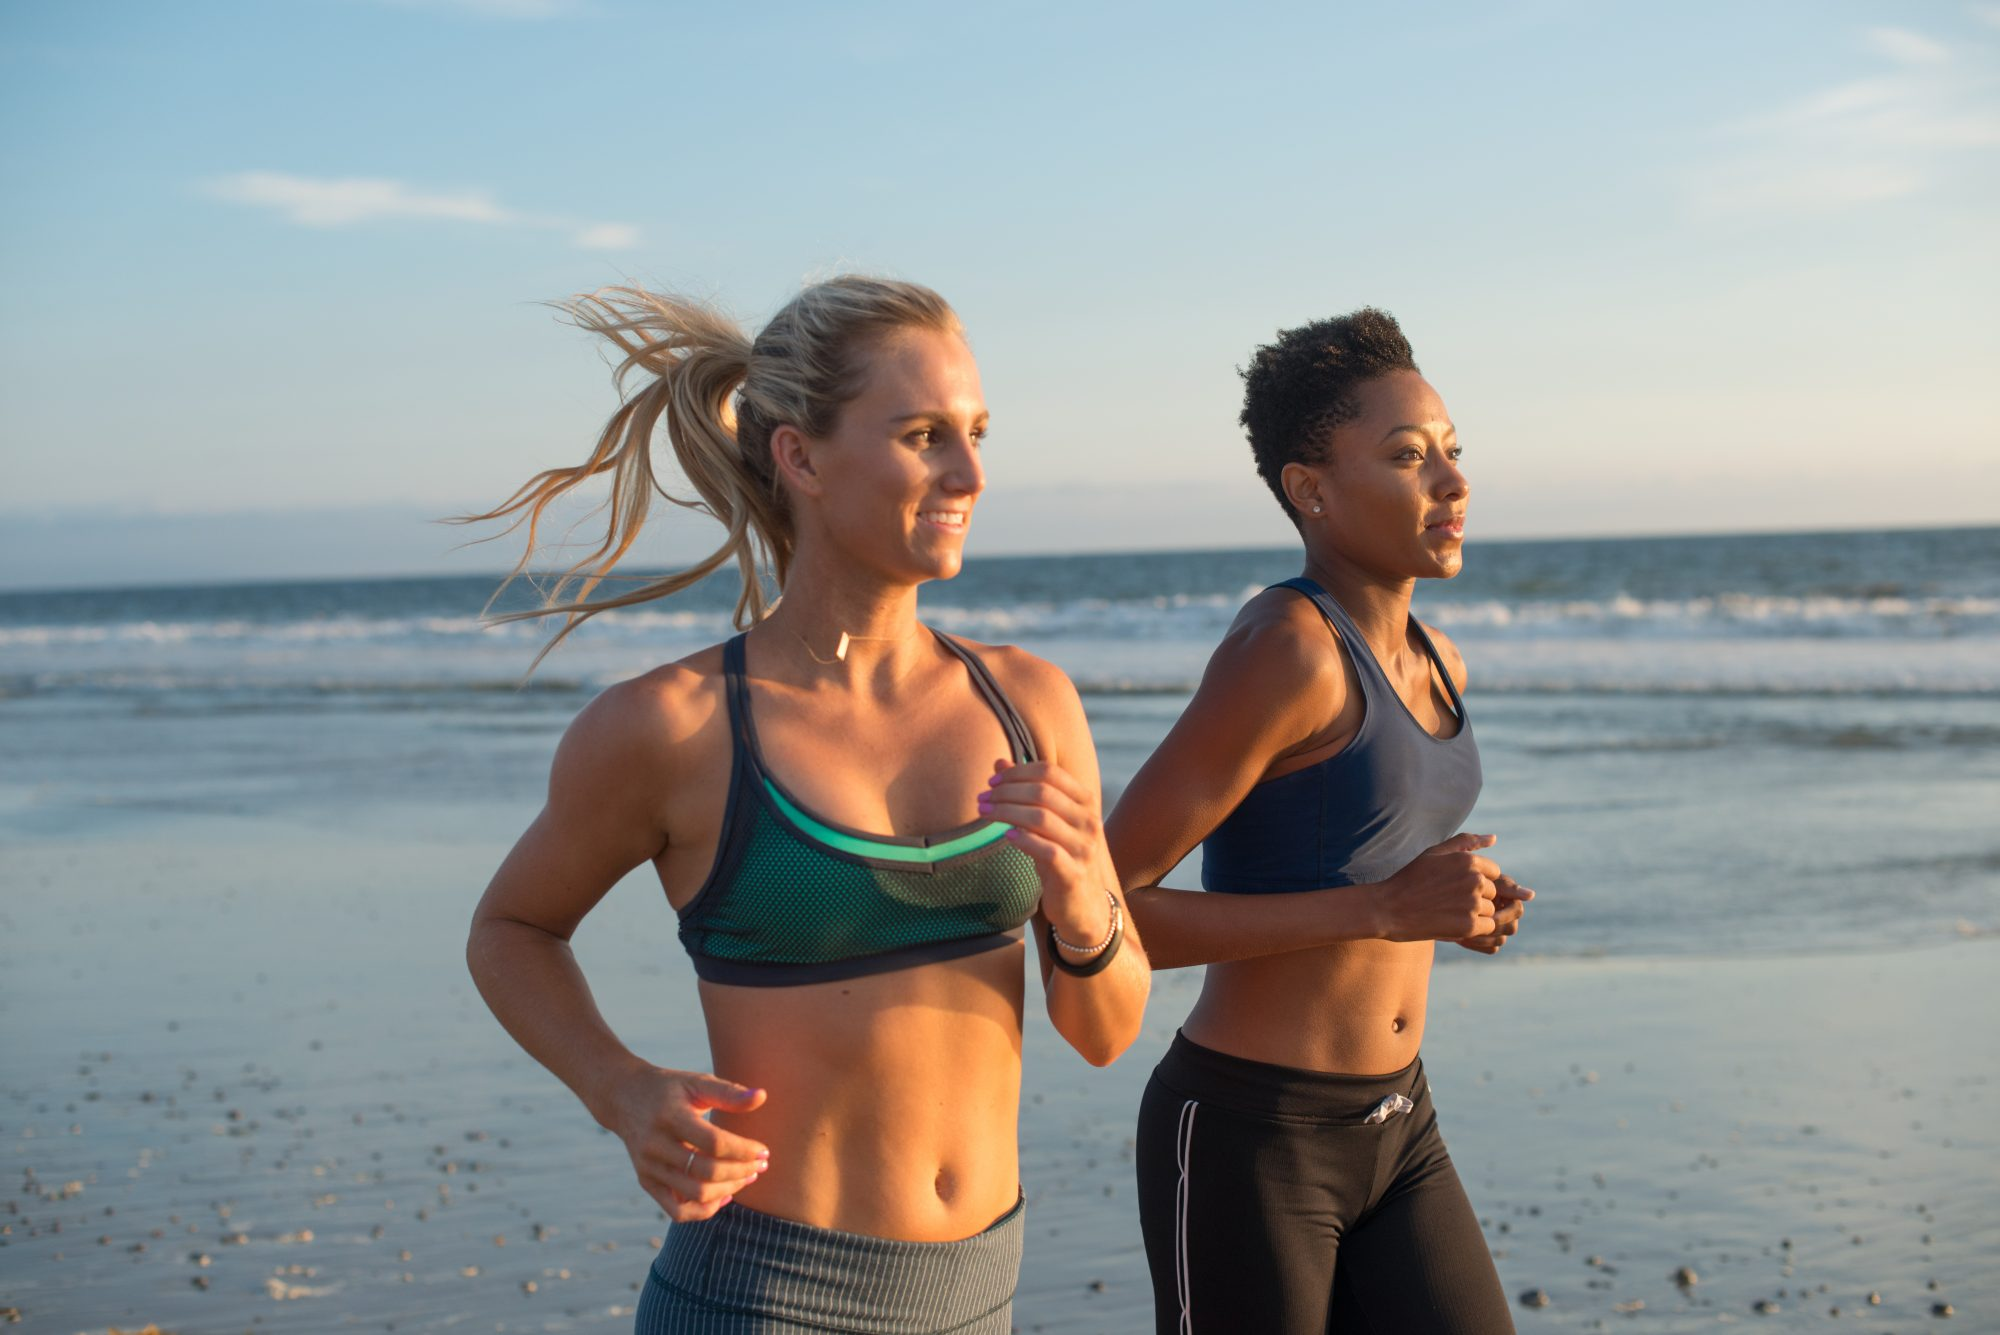 06-buddy-up-guide-running-beach-friendship-exercise